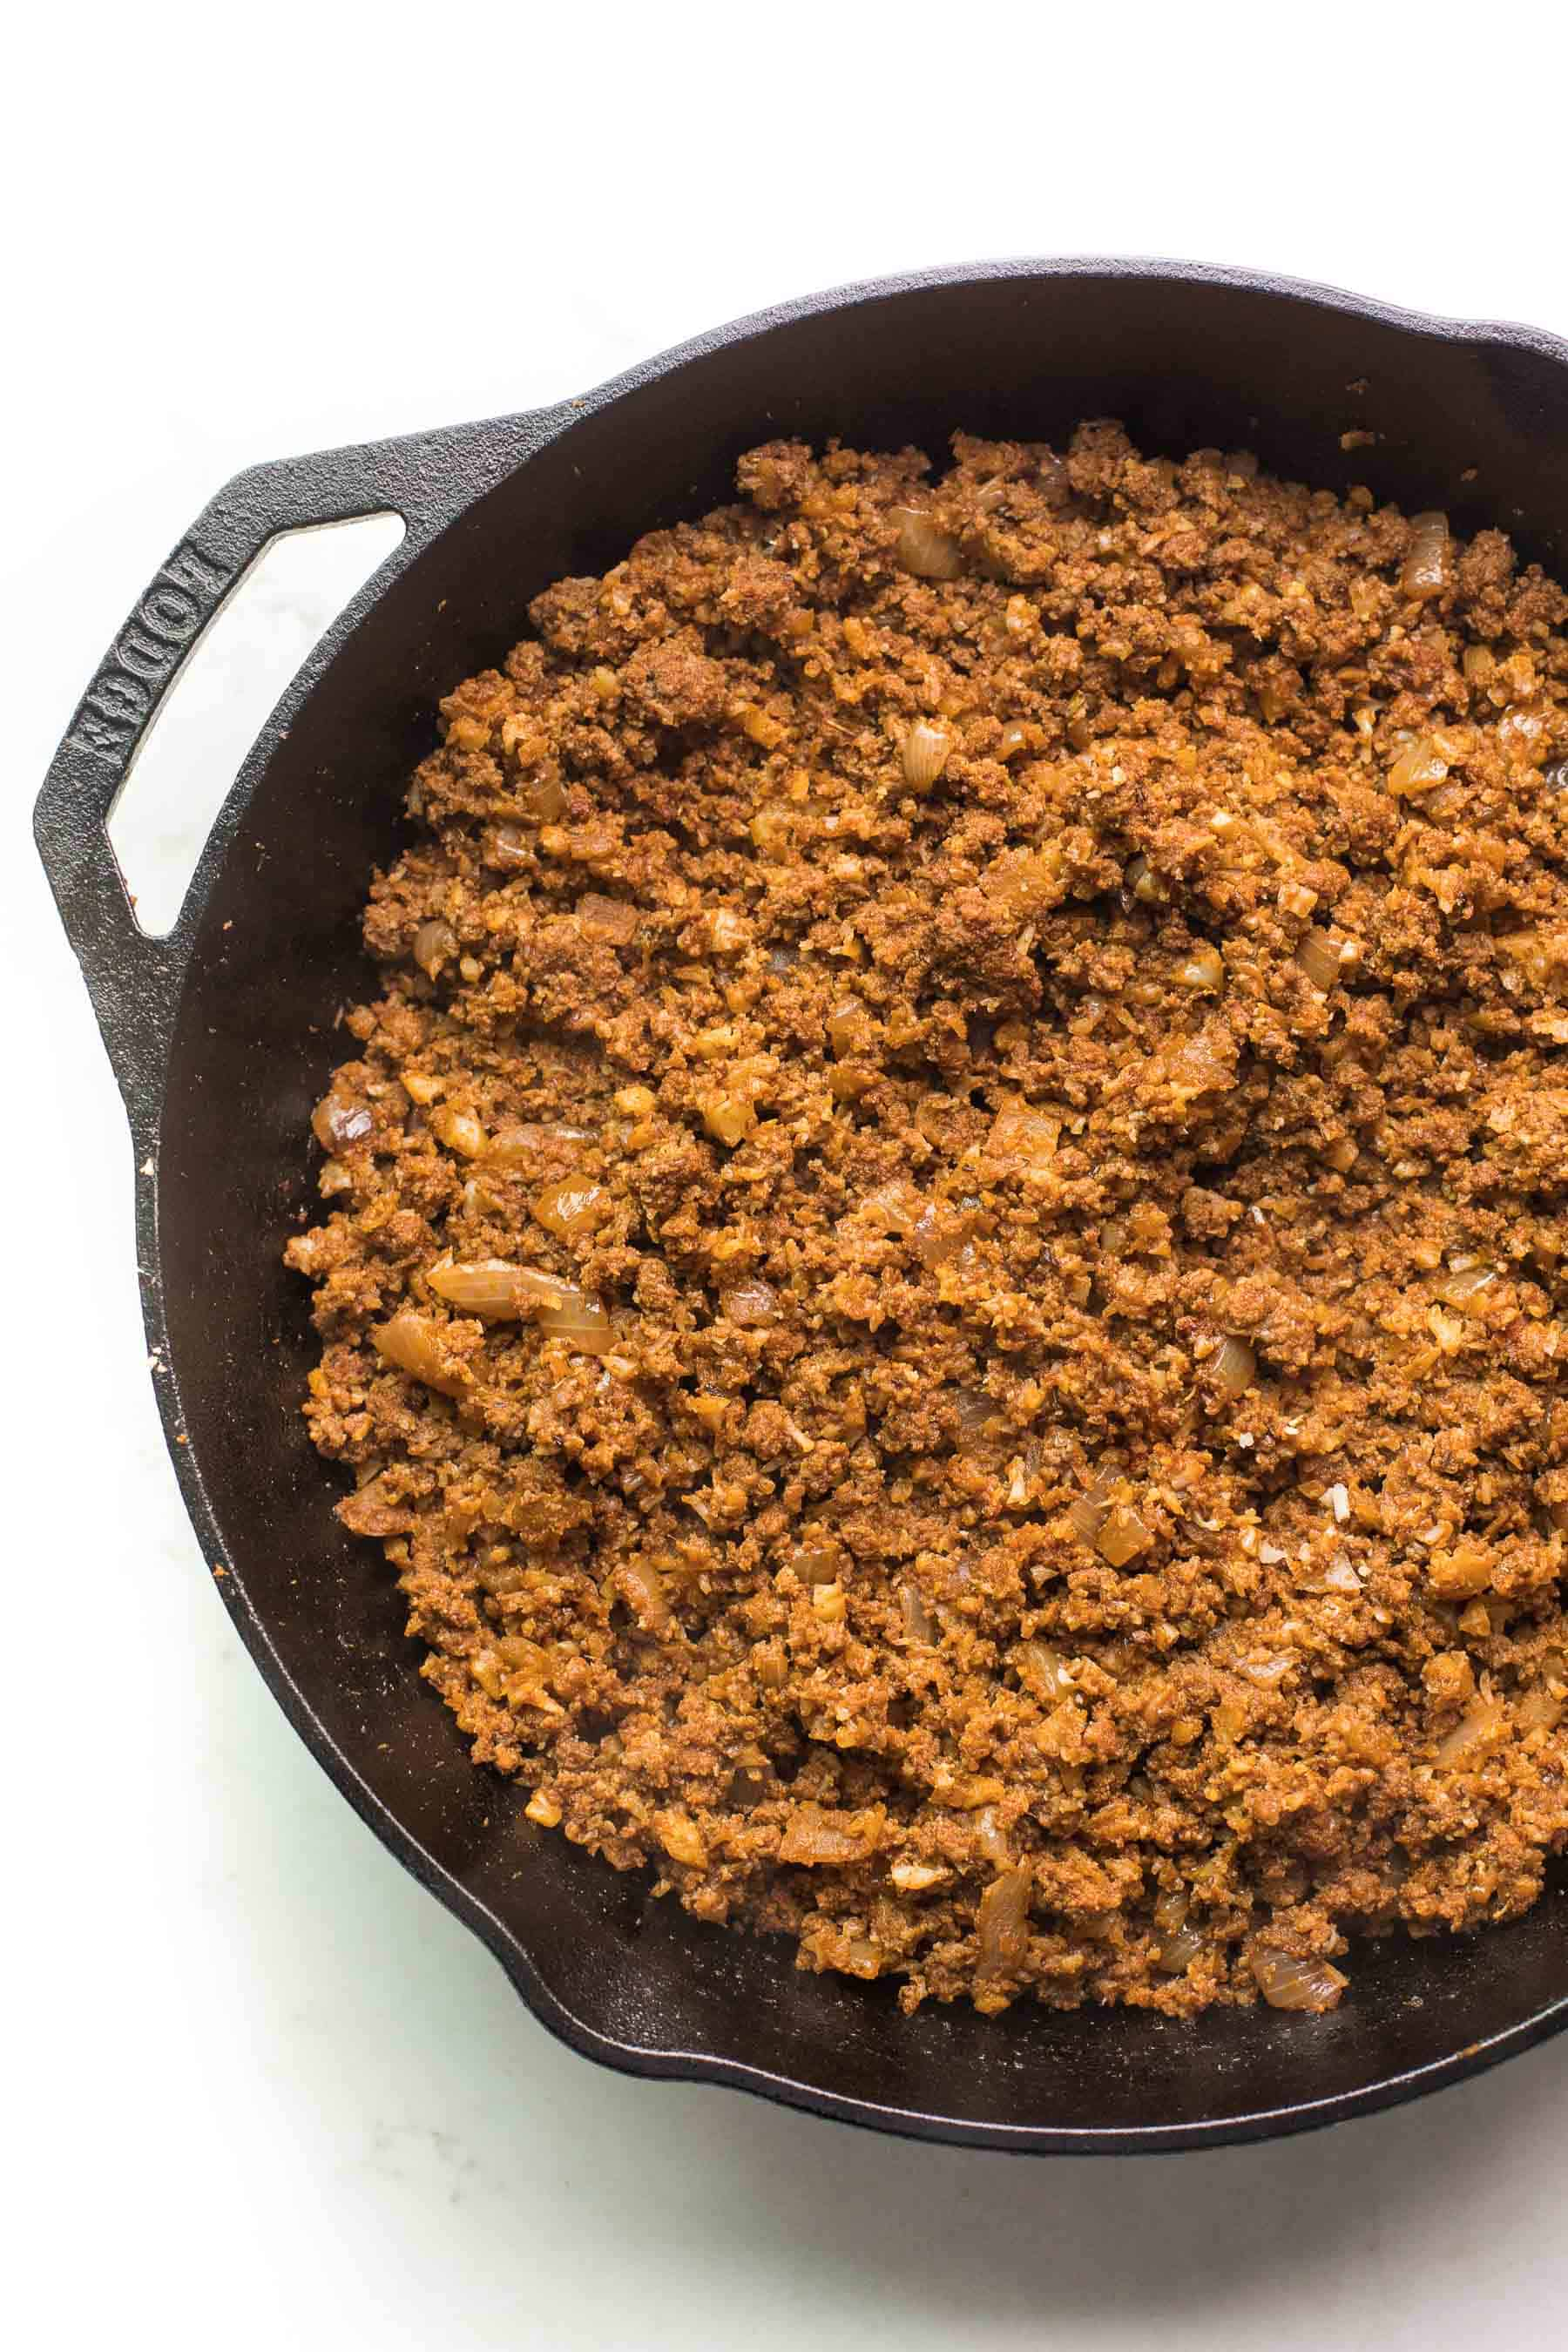 ground beef taco meat in a cast iron skillet on a white background